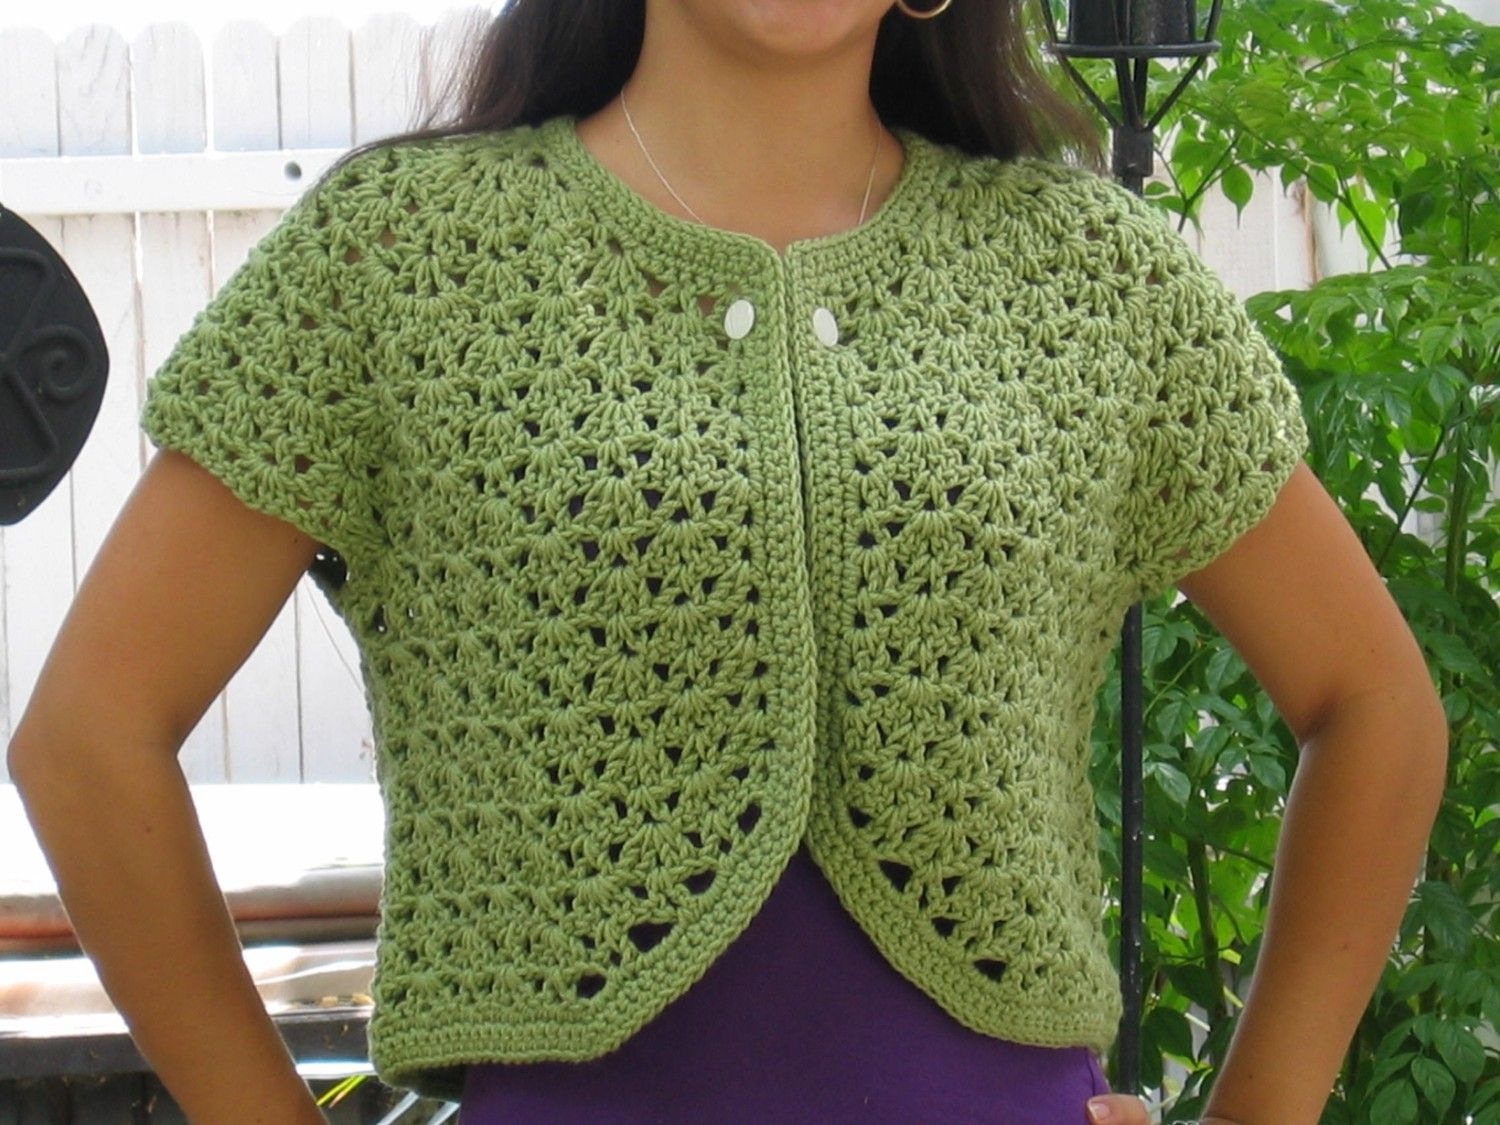 Easy Crochet Cardigan Free Patterns | How to Crochet a Sleeve in a ...